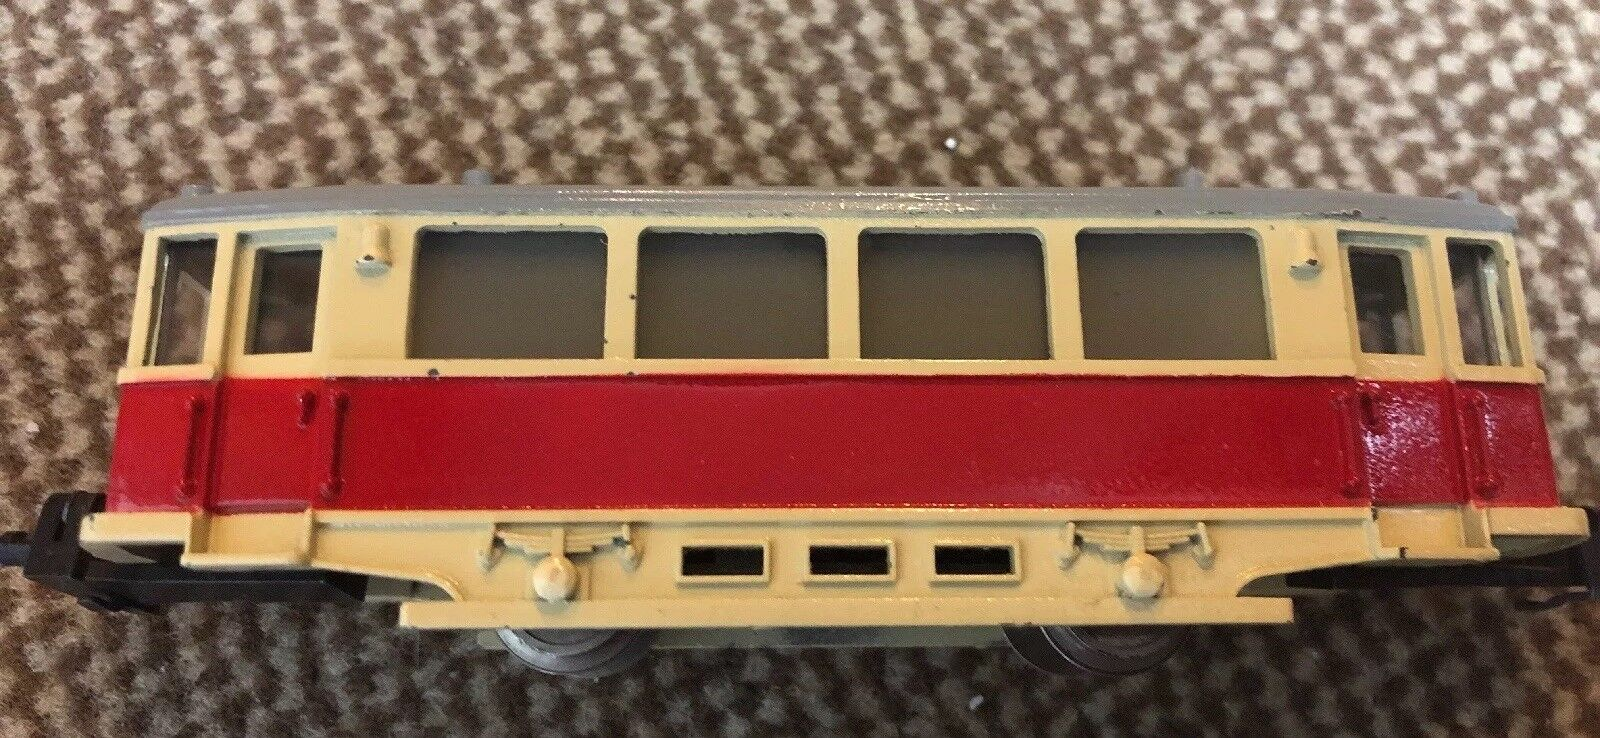 Märklin HAMO 250, Tram Trailer, Red Beige, Top Original Condition